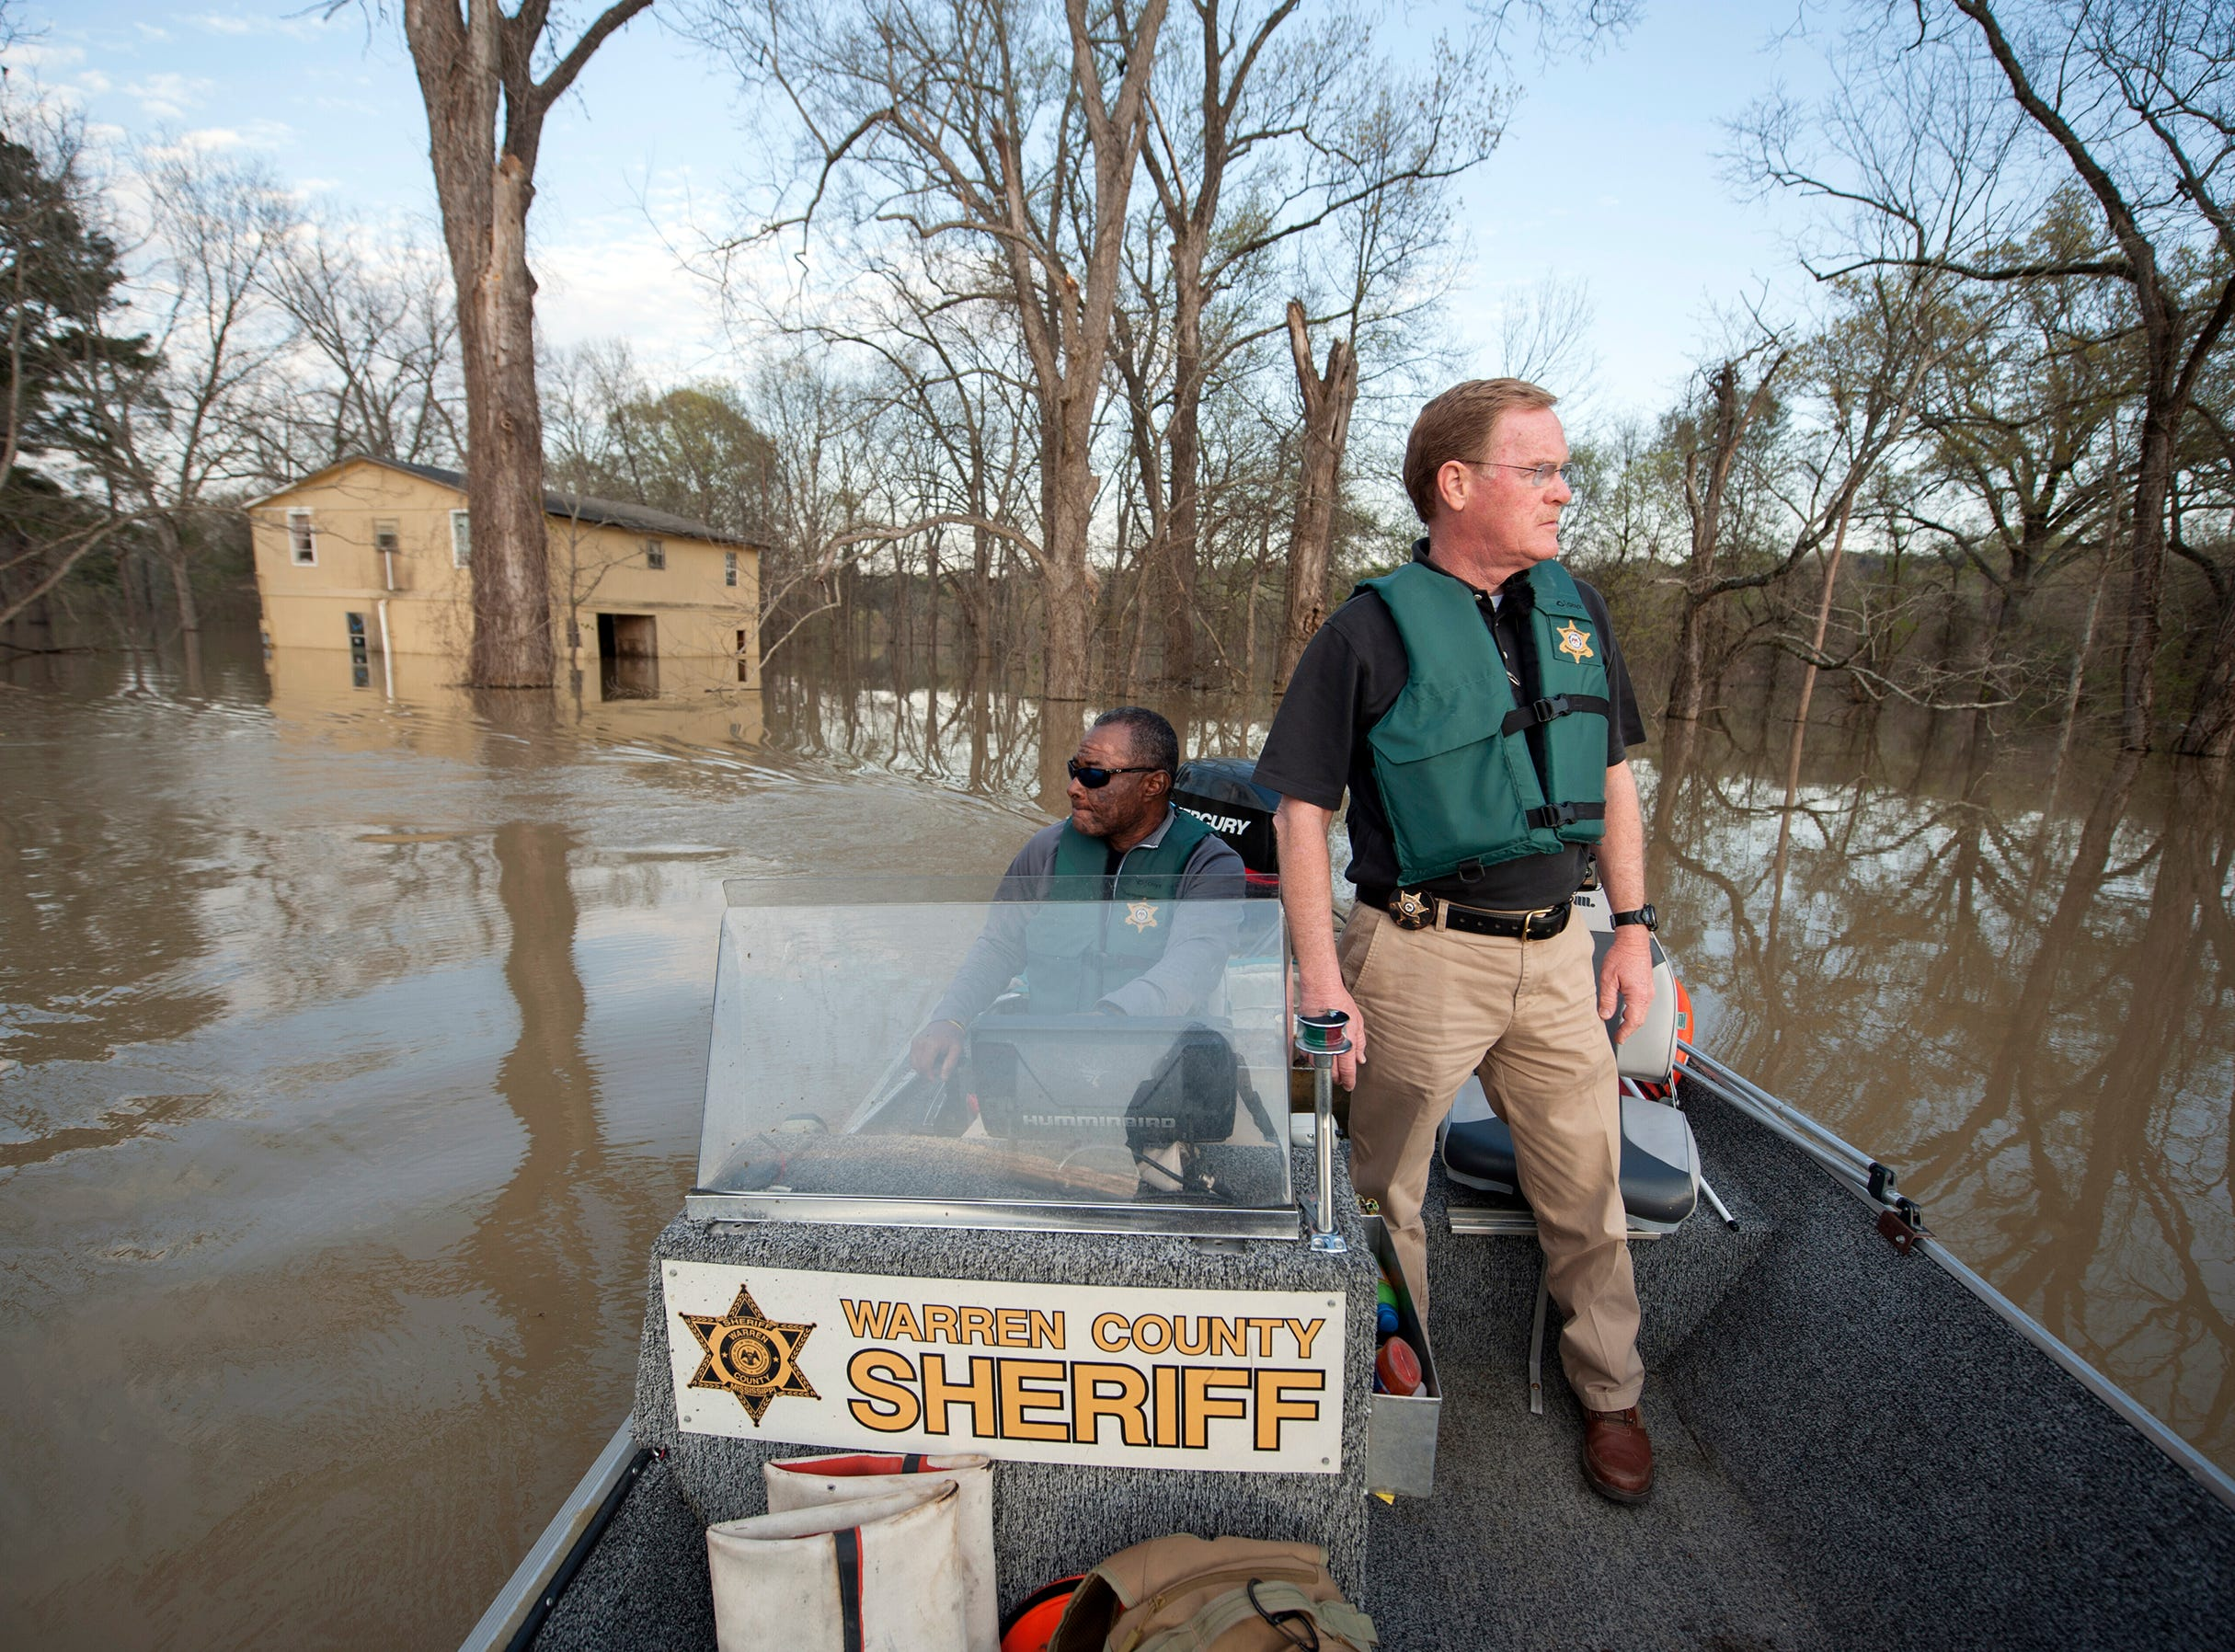 Warren County Sheriff Martin Pace, standing, and Det. Sam Winchester, move slowly through the Chickasaw subdivision in Vicksburg, flooded by the Yazoo River. Hit hard by river flooding in previous years, many people have long abandoned their homes. Some, who had chosen to stay have either evacuated for this flood or are making do, traveling in and out by boat.